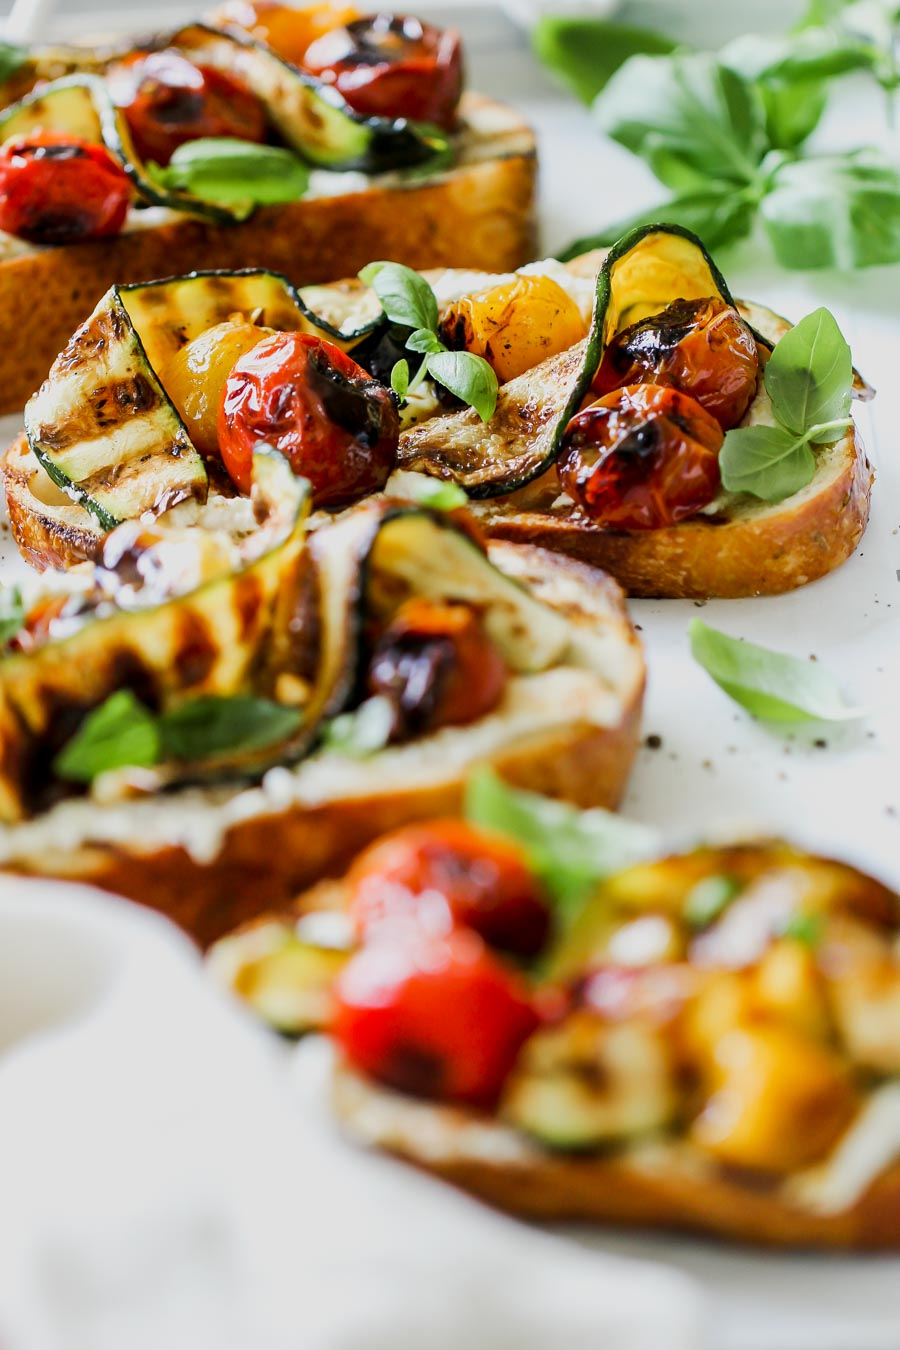 Blistered Tomato and Zucchini Tartines with Whipped Feta